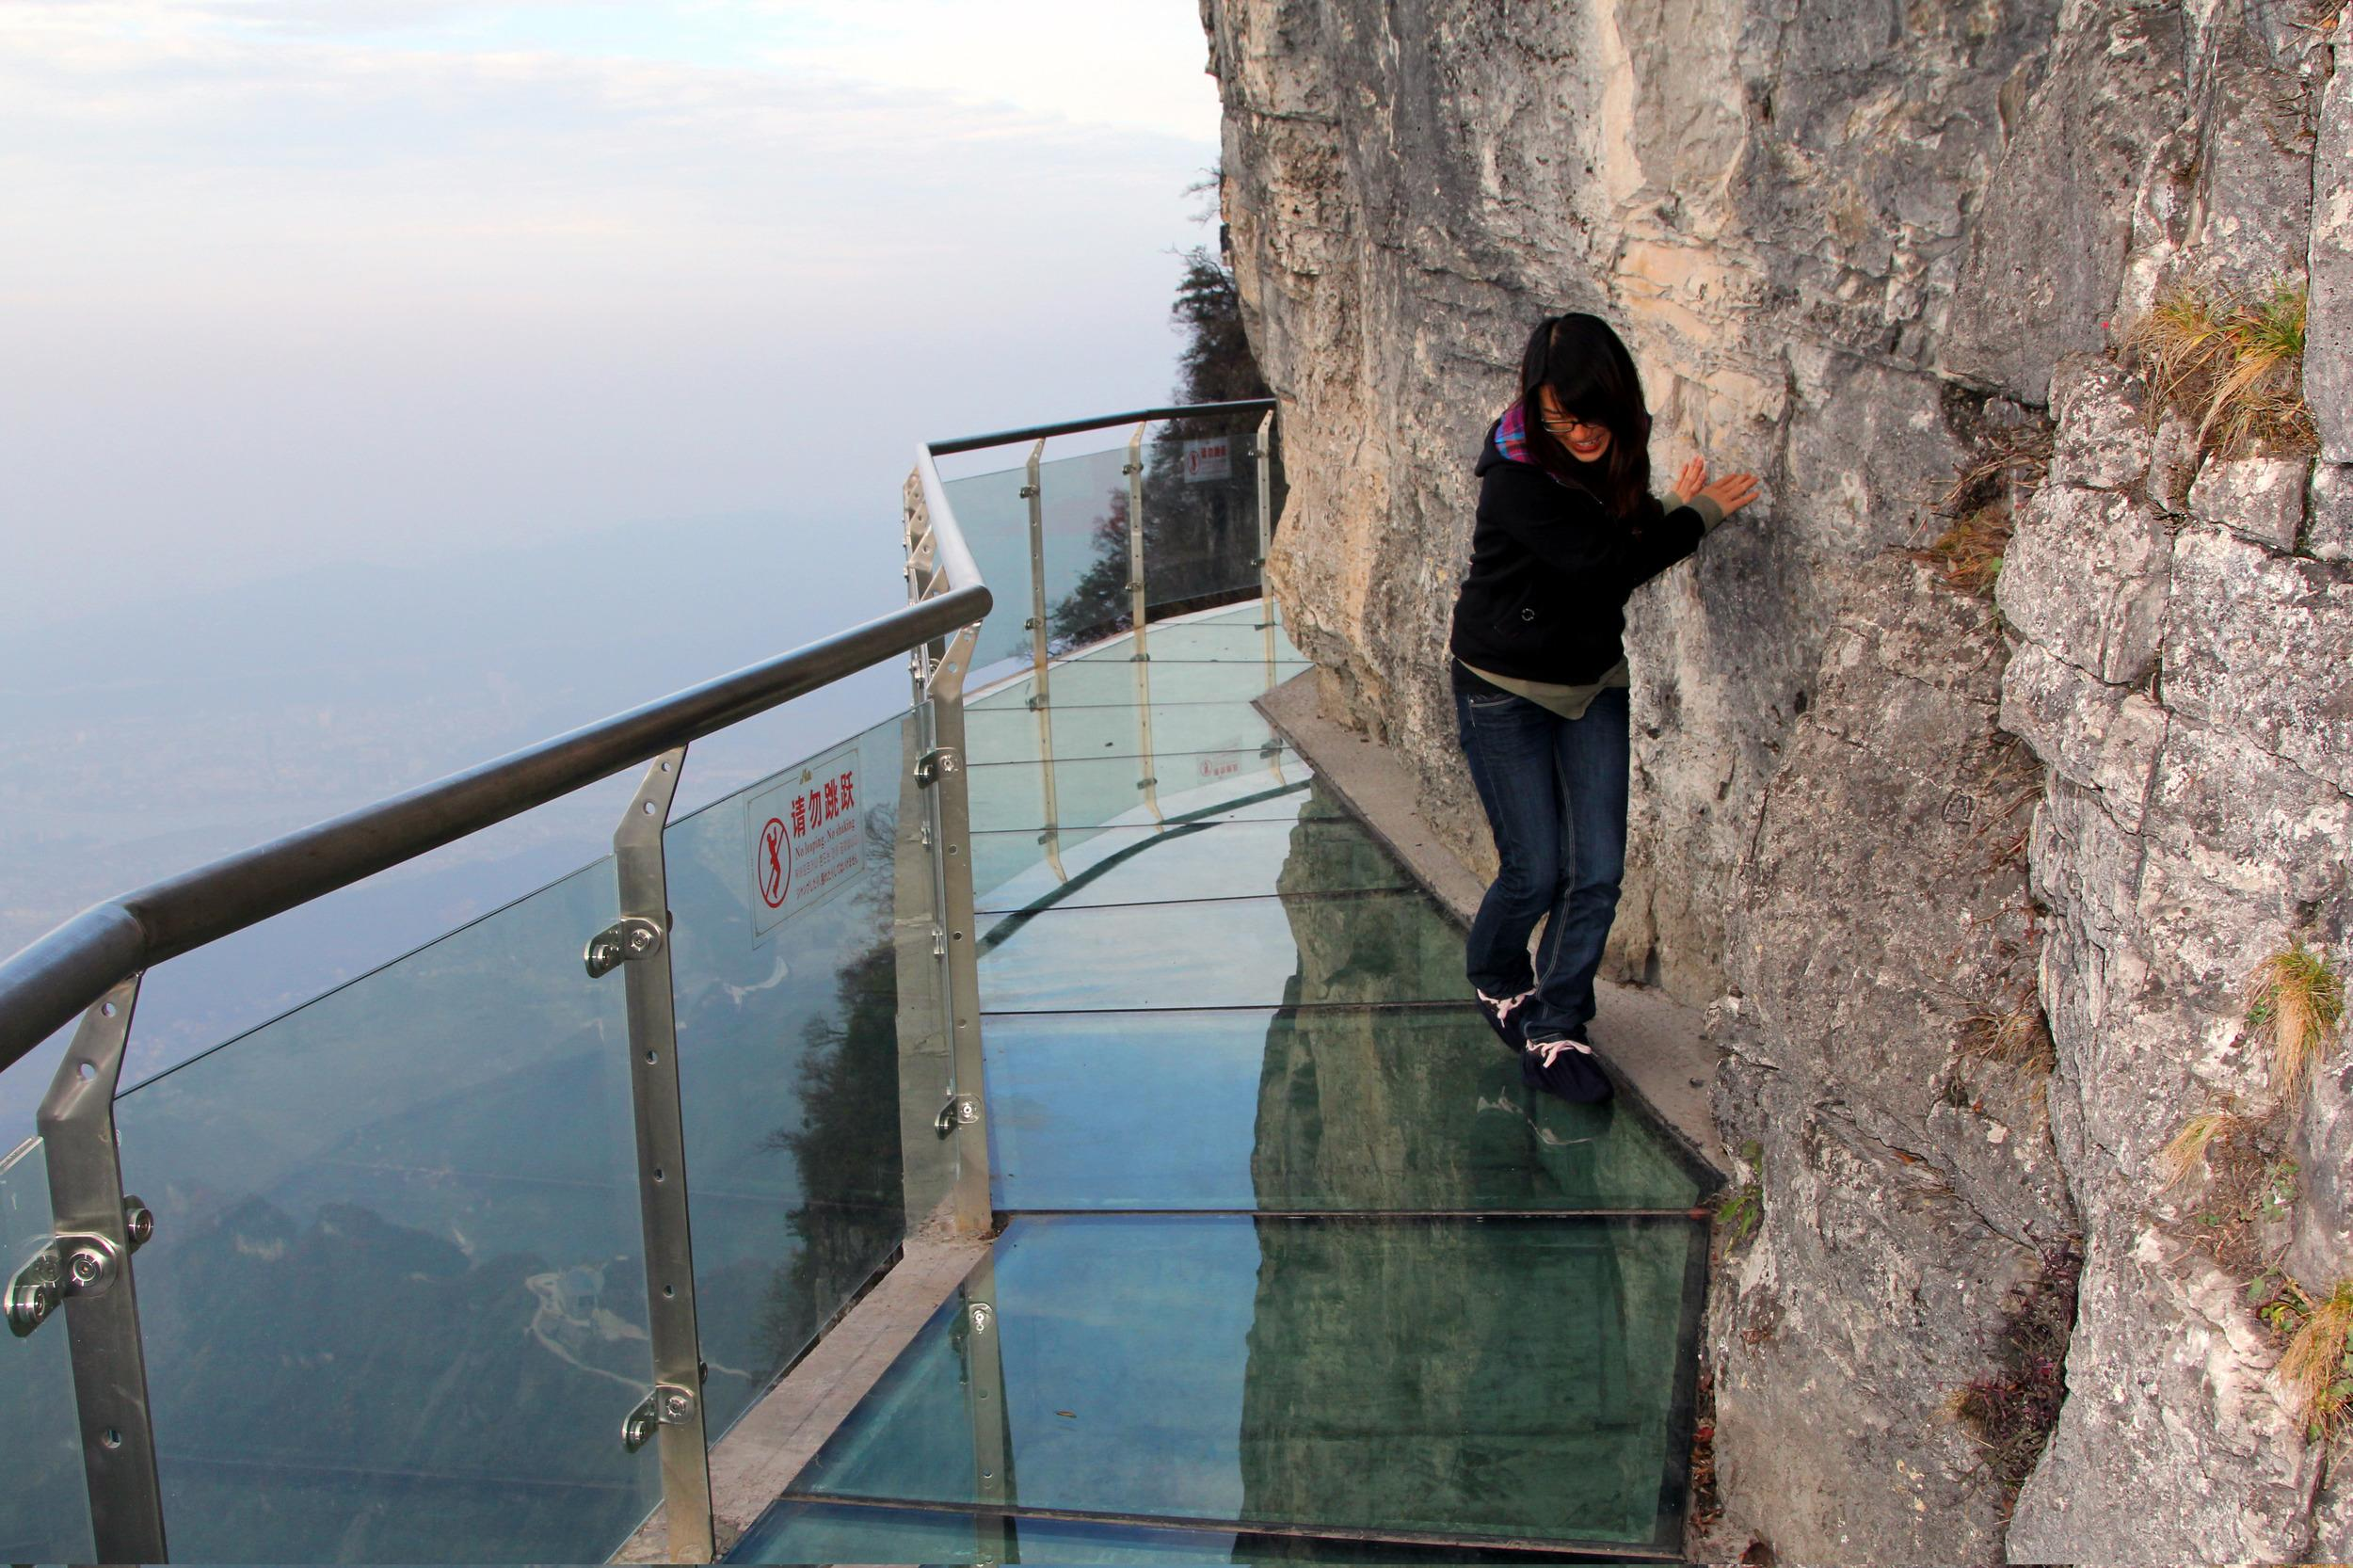 "Tourists with nerves of steel can step onto a 60-metre long glass walkway, aptly named the <a href=""http://travel.aol.co.uk/2011/11/10/walk-of-faith-glass-pavement-built-round-1-430-metre-high-mountain-in-china/"" target=""_blank"">Walk of Faith</a>, which sits 1,430 metres (4,690ft) up Tianmen Mountain in China. For those who need a confidence boost, Tianmen Mountain National Forest Park is often clouded in fog, making the drop hard to see. Extreme walkers will love the translucent floor on a clear day as it offers some unforgettable sightseeing."